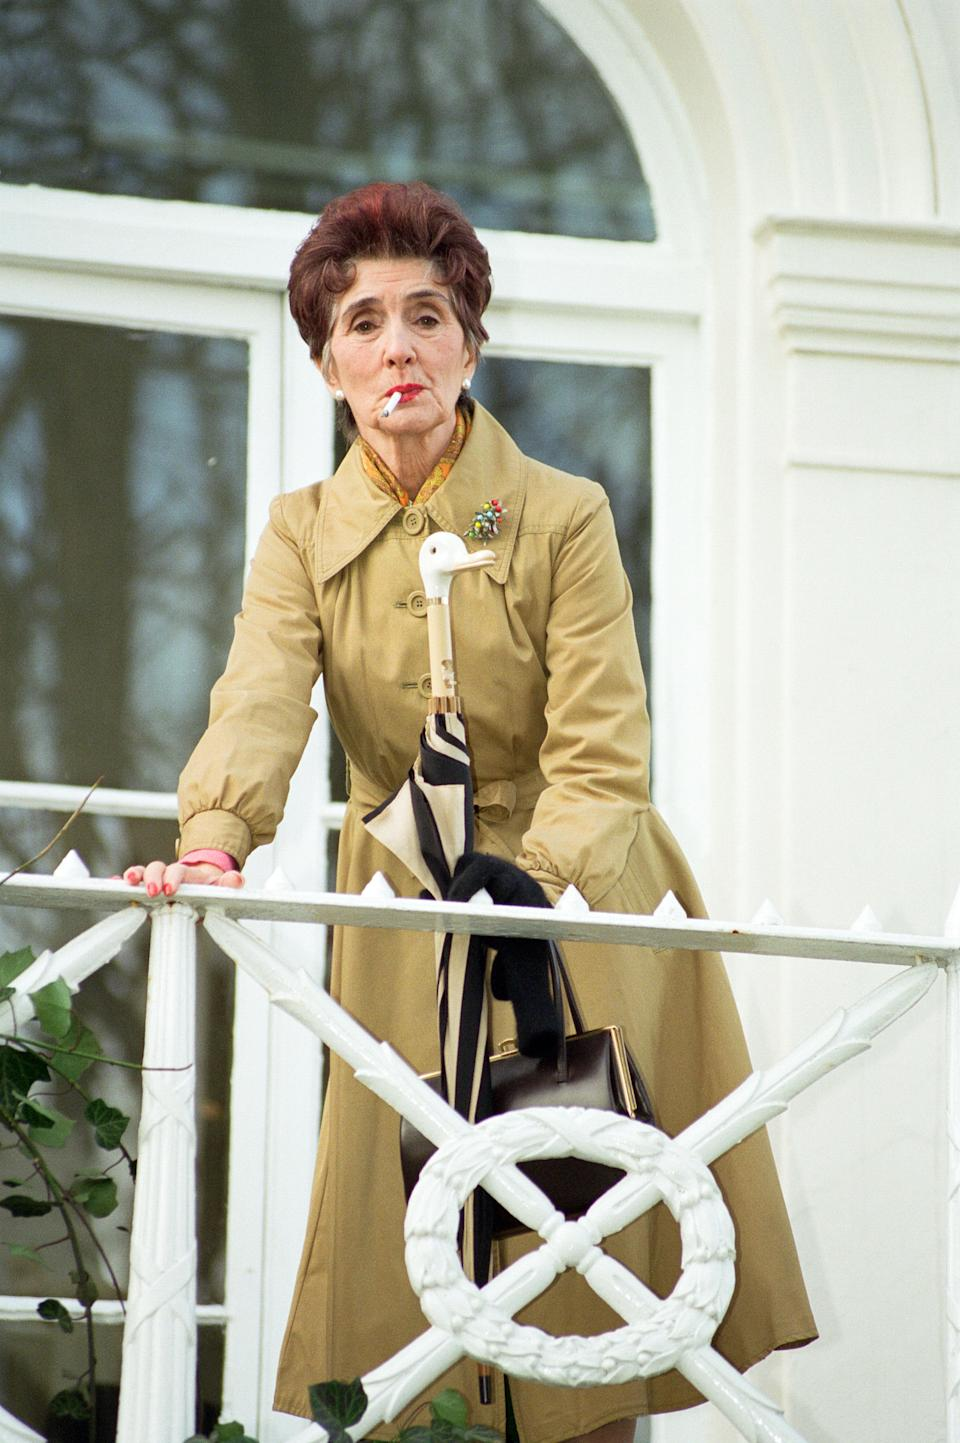 Dot Cotton, played by June Brown, is set to return to EastEnders on 14th April. She is pictured in Gravesend, 25th February 1997. (Photo by Alisdair MacDonald/Mirrorpix/Getty Images)